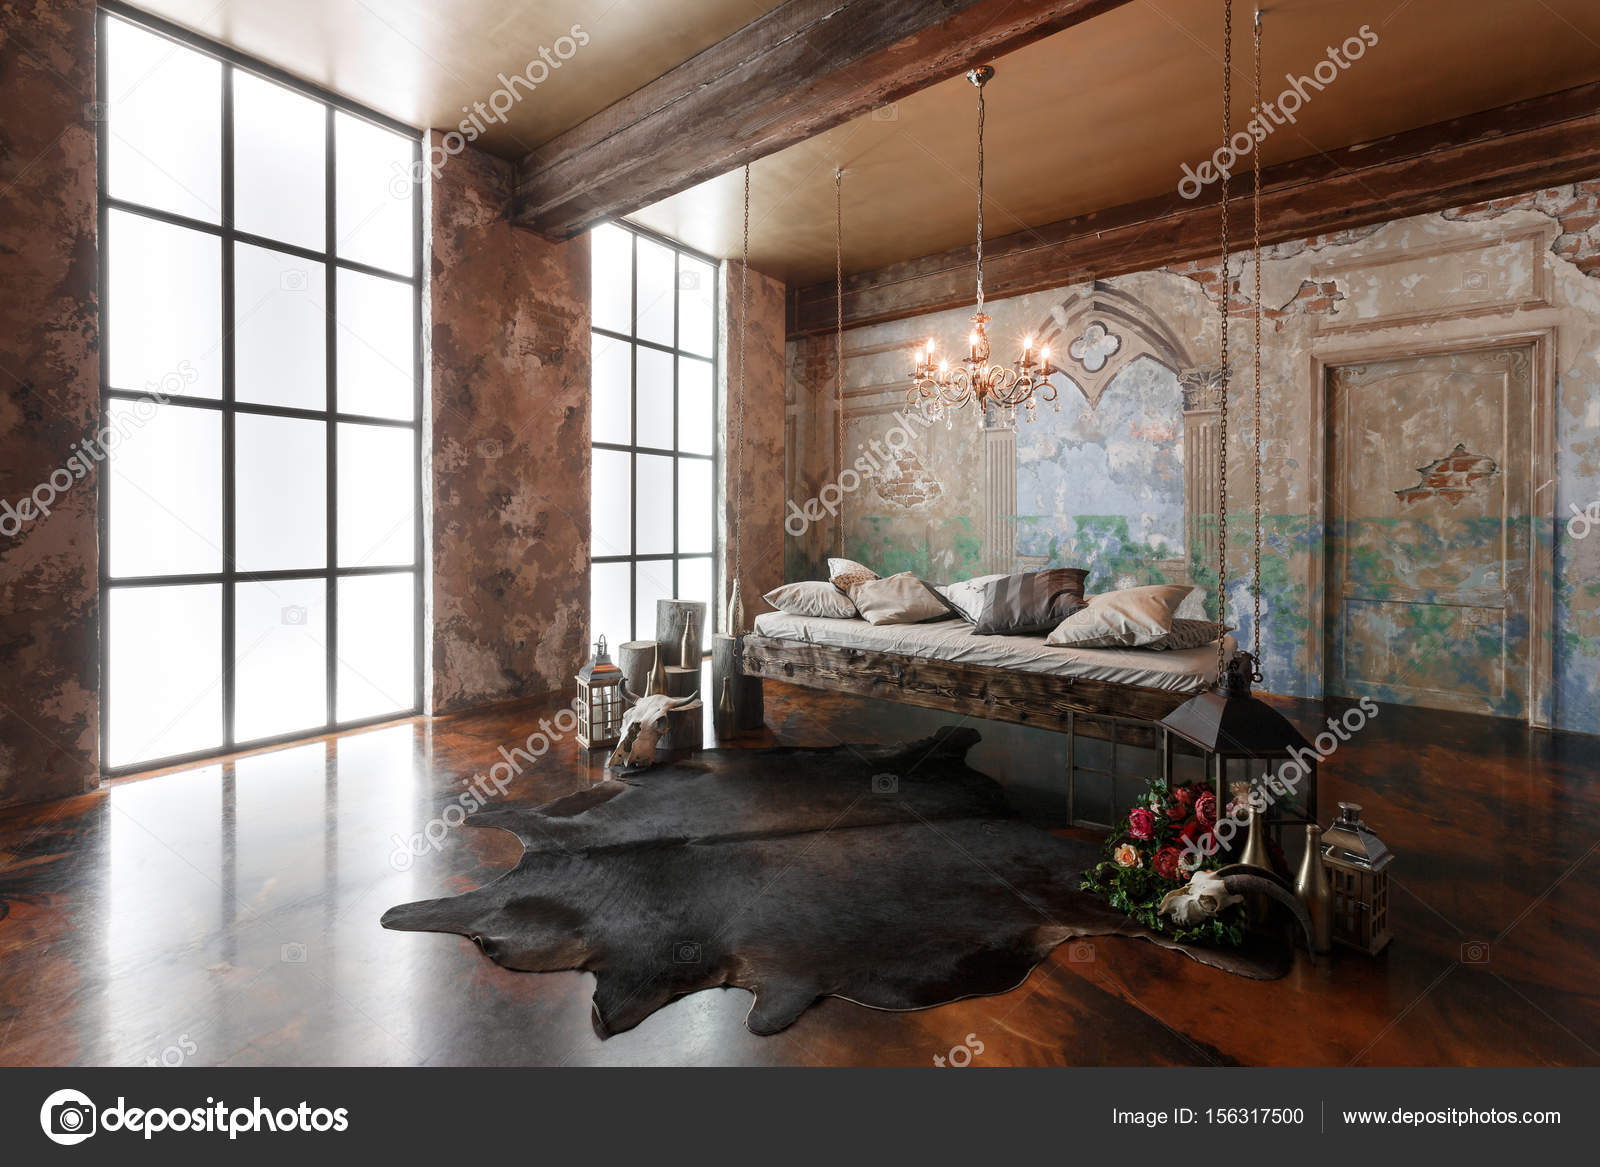 Hangend Bed Interieur Loft Met Hangende Bed In De Moderne Design Stockfoto